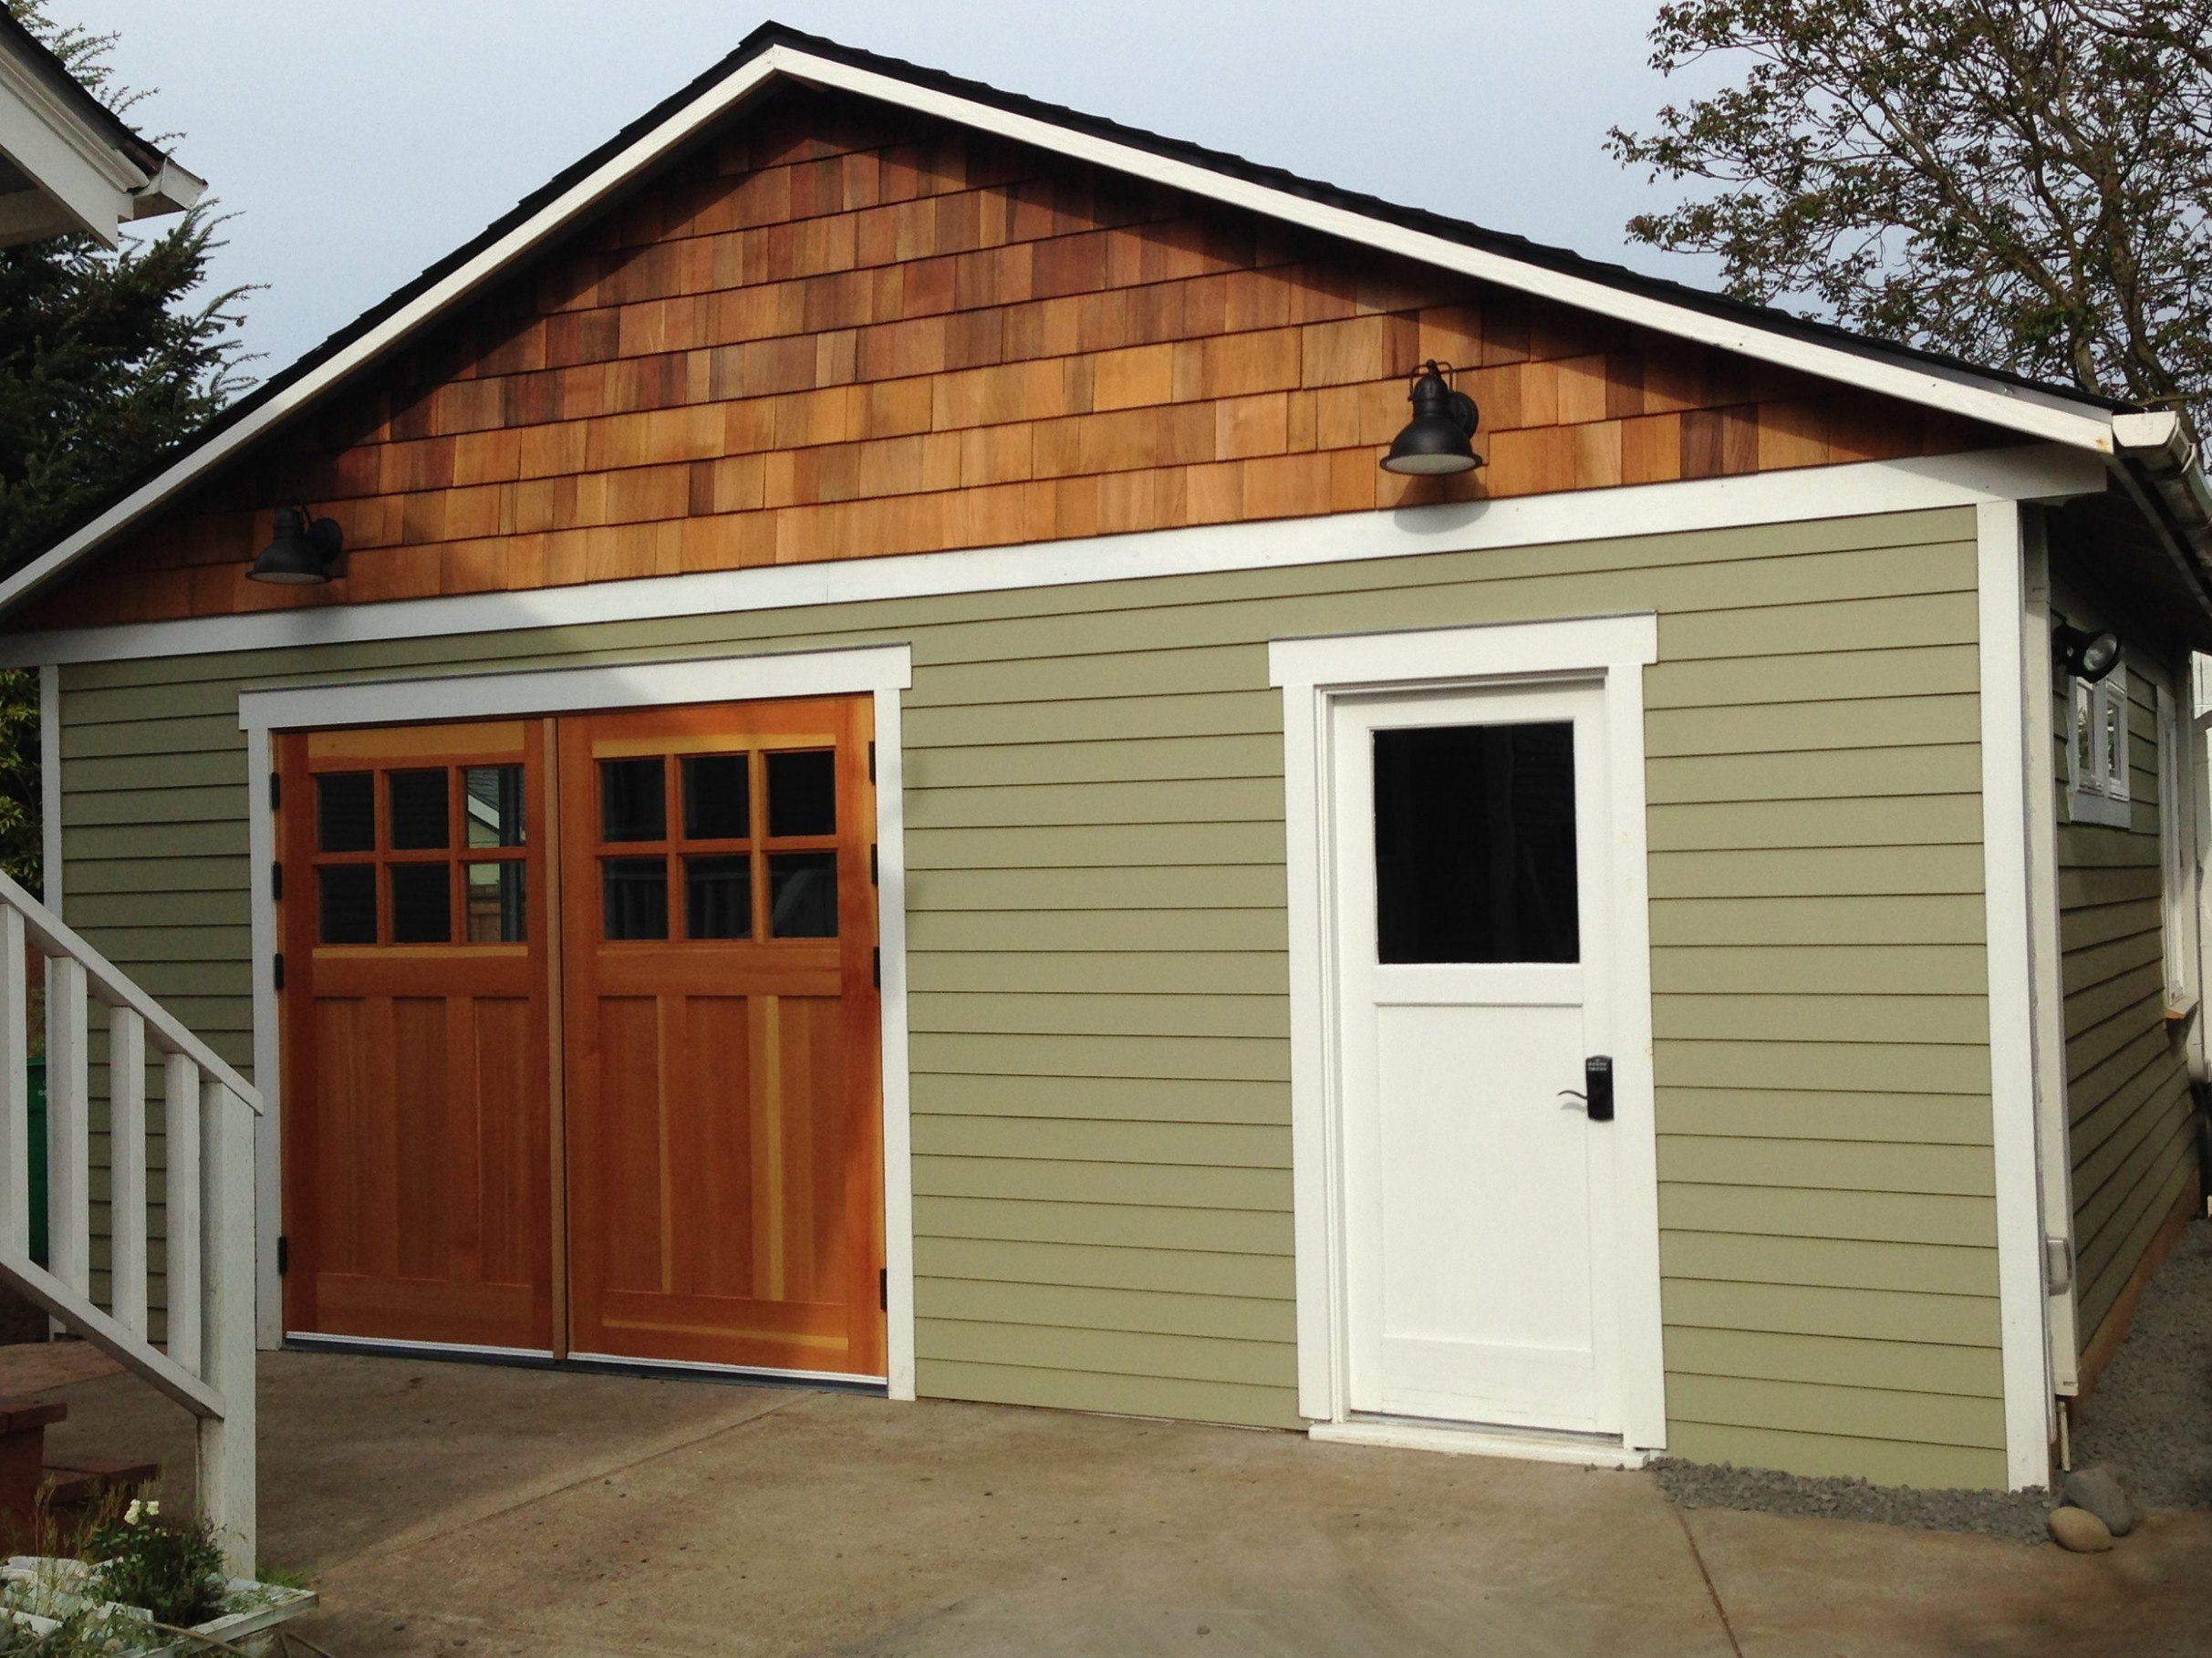 How To Save Money With A Garage Conversion ADU — Building An ADU Carport Entrance Ideas